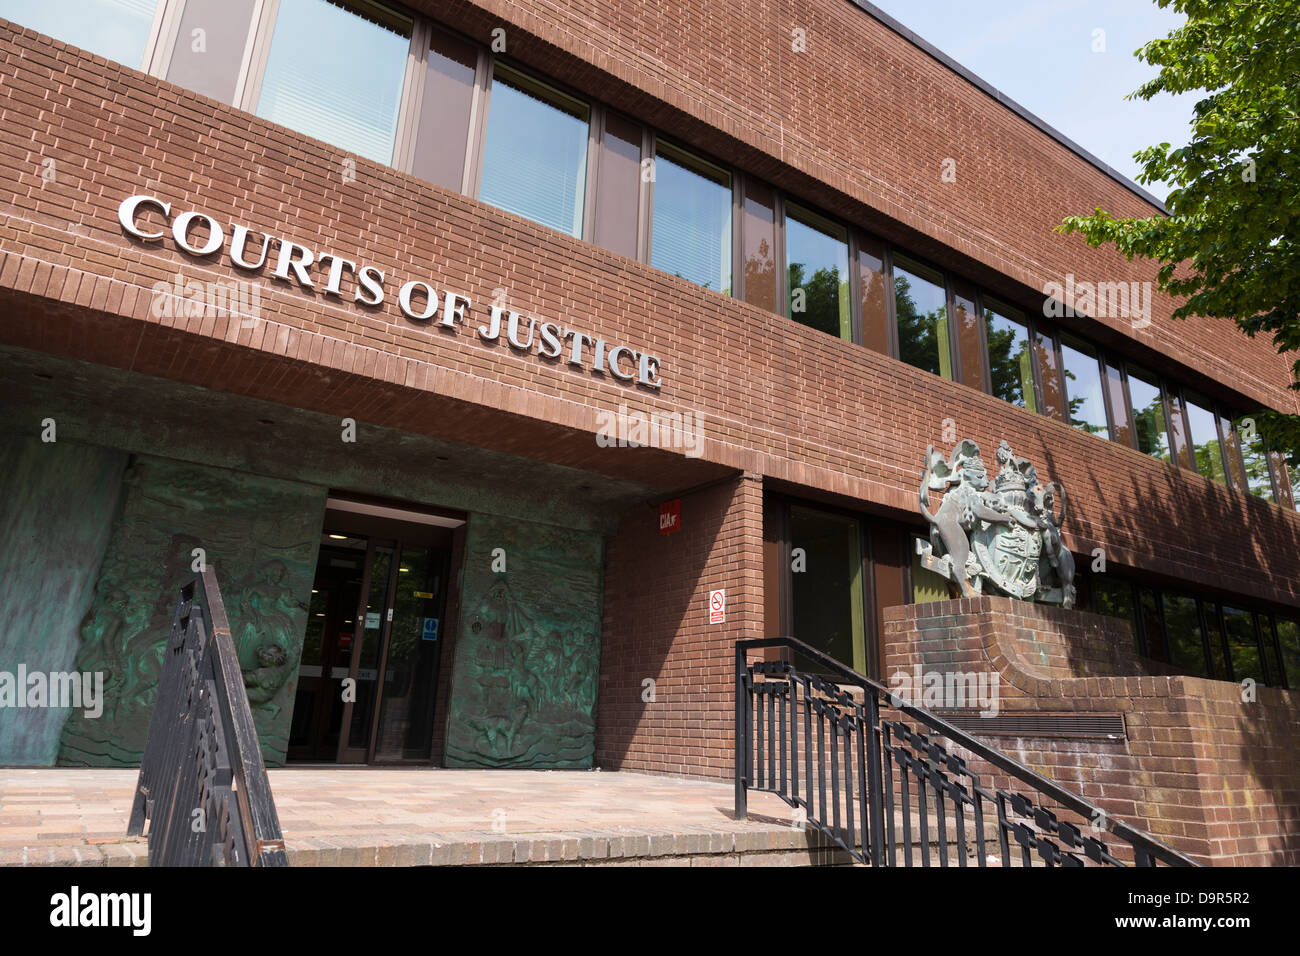 Exterior of Pourtsmouth Crown Court - Stock Image